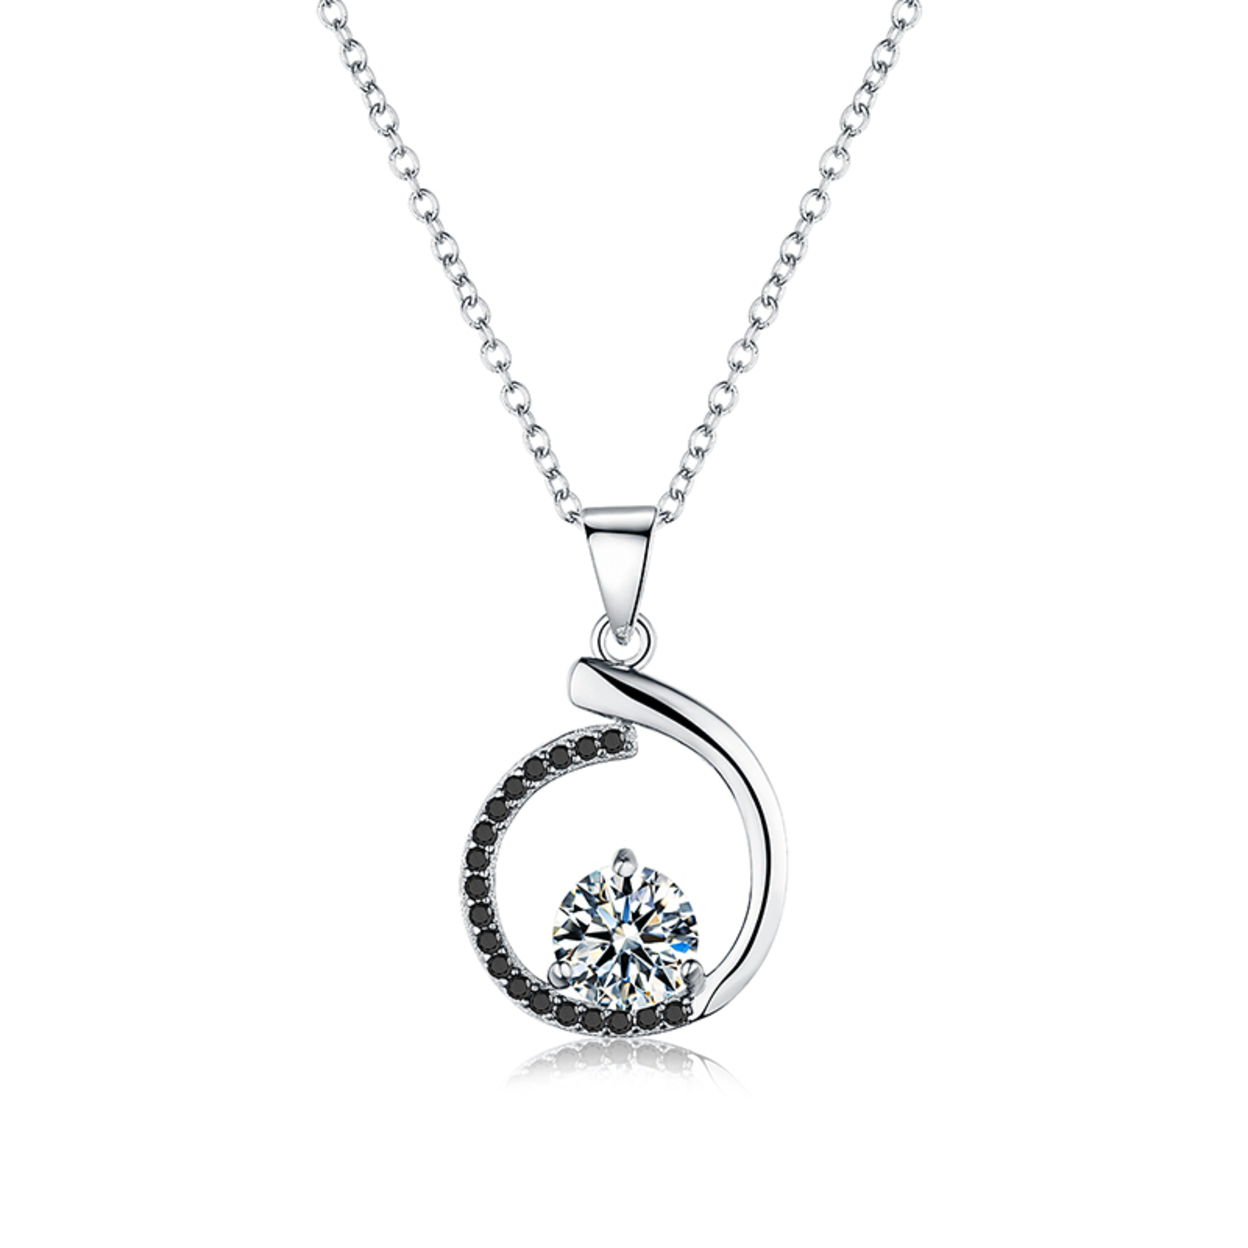 Genuine 925 Sterling Silver Necklaces&pendants Jewelry Trendy Black&white Stone Necklace Women P085